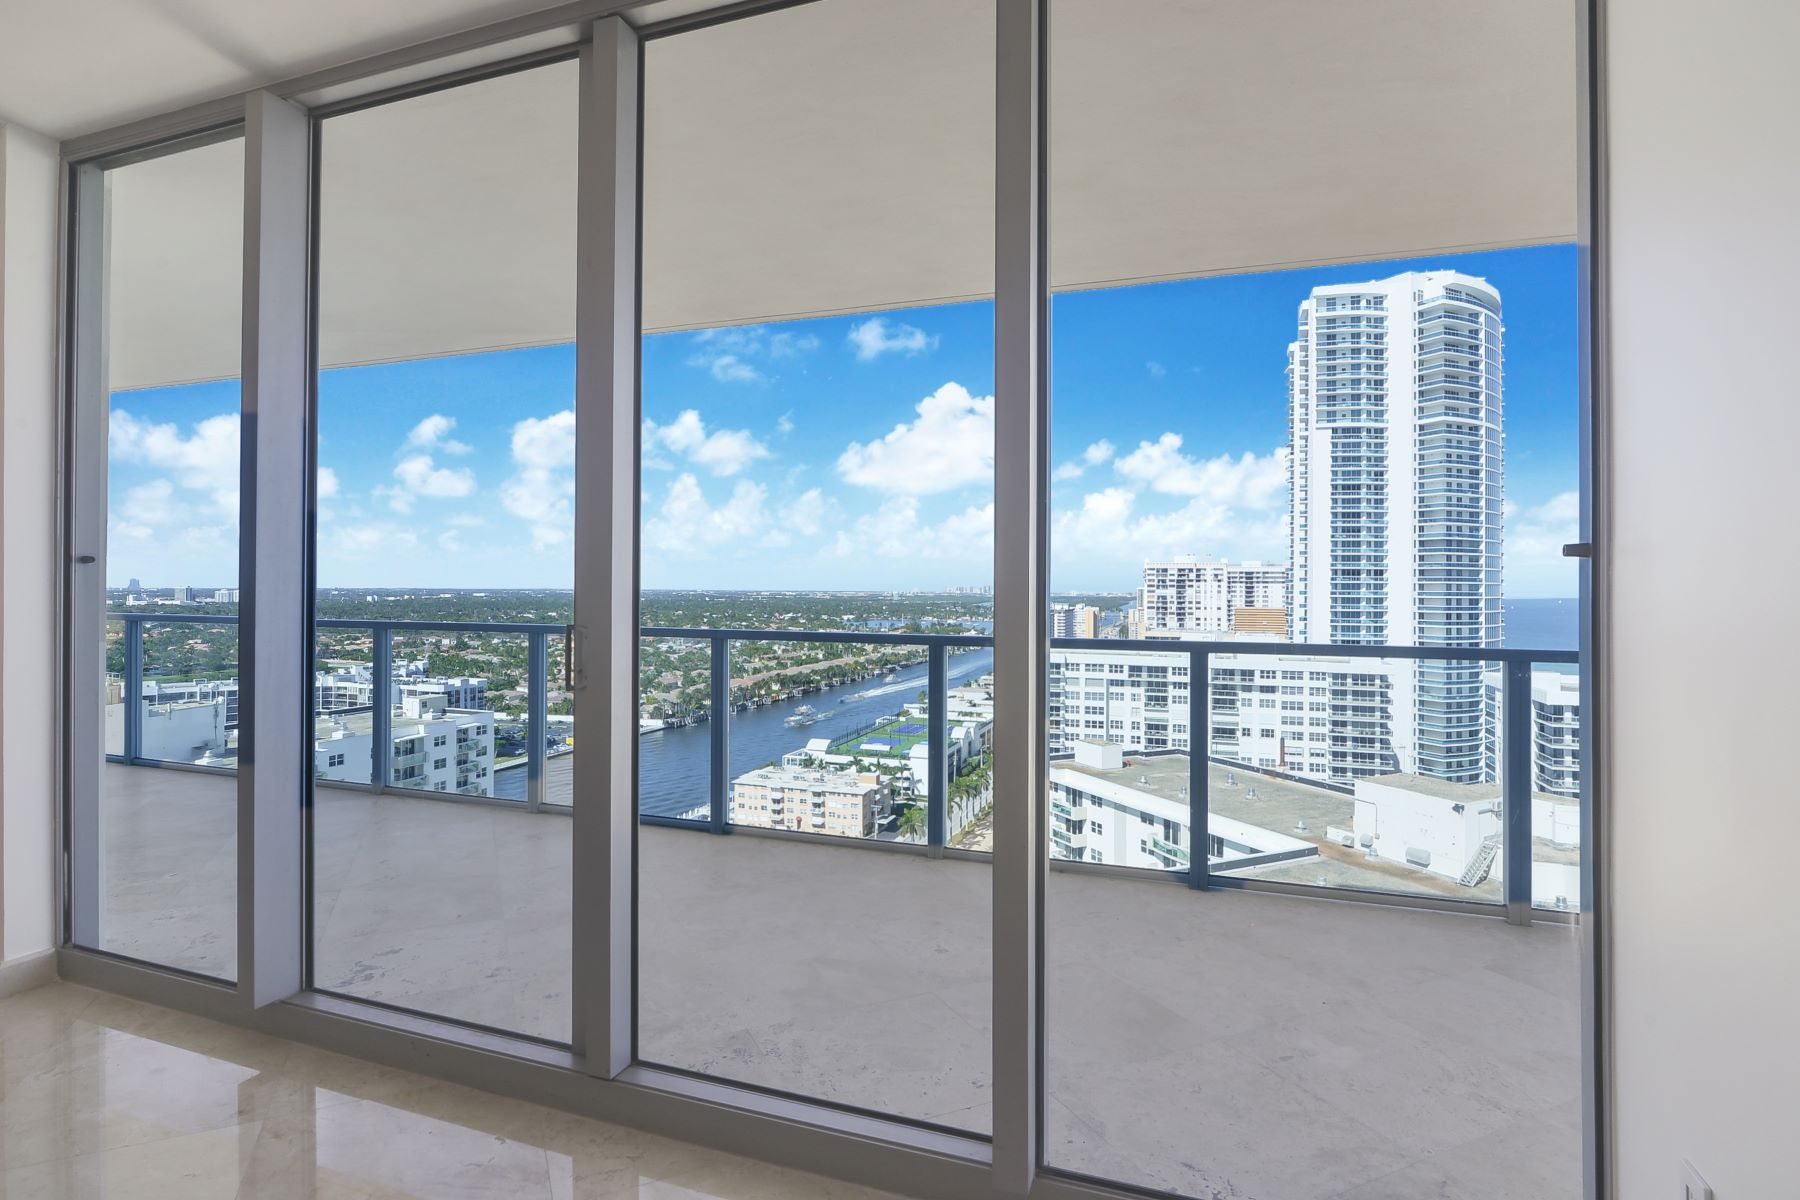 Additional photo for property listing at 3101 S Ocean Dr 2201 Hollywood, Florida 33019 United States